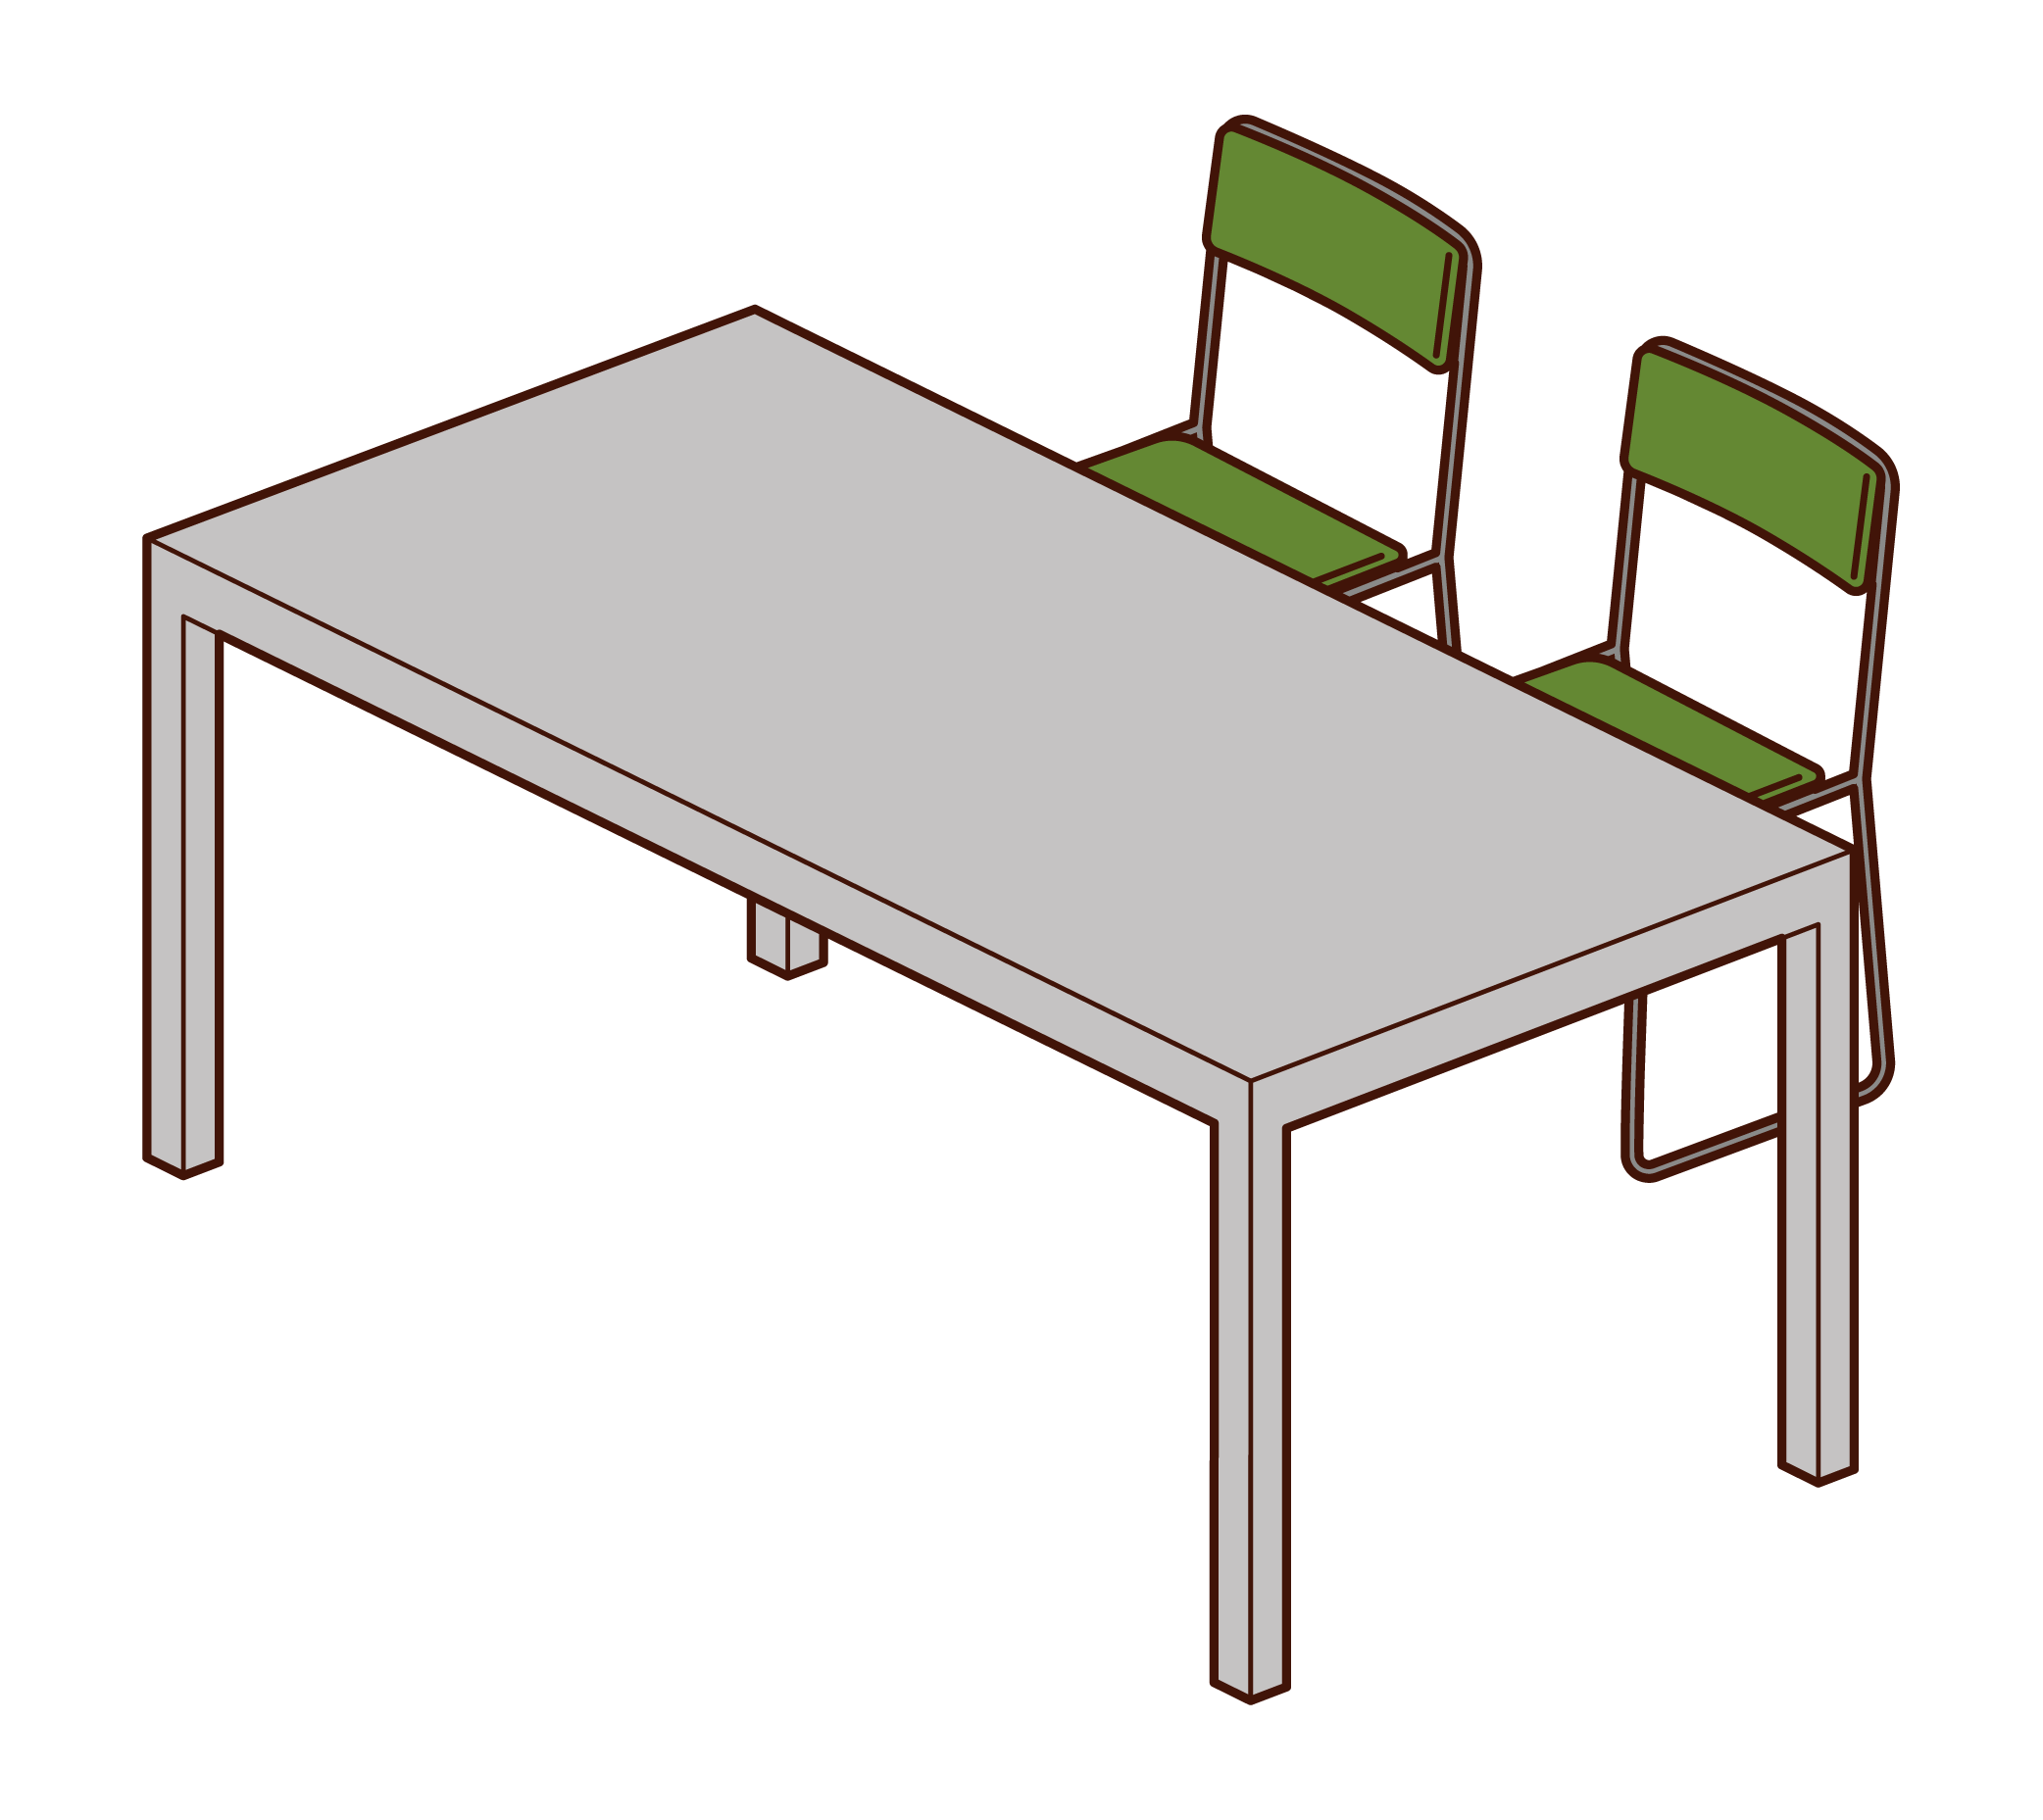 Office desk and chair illustrations